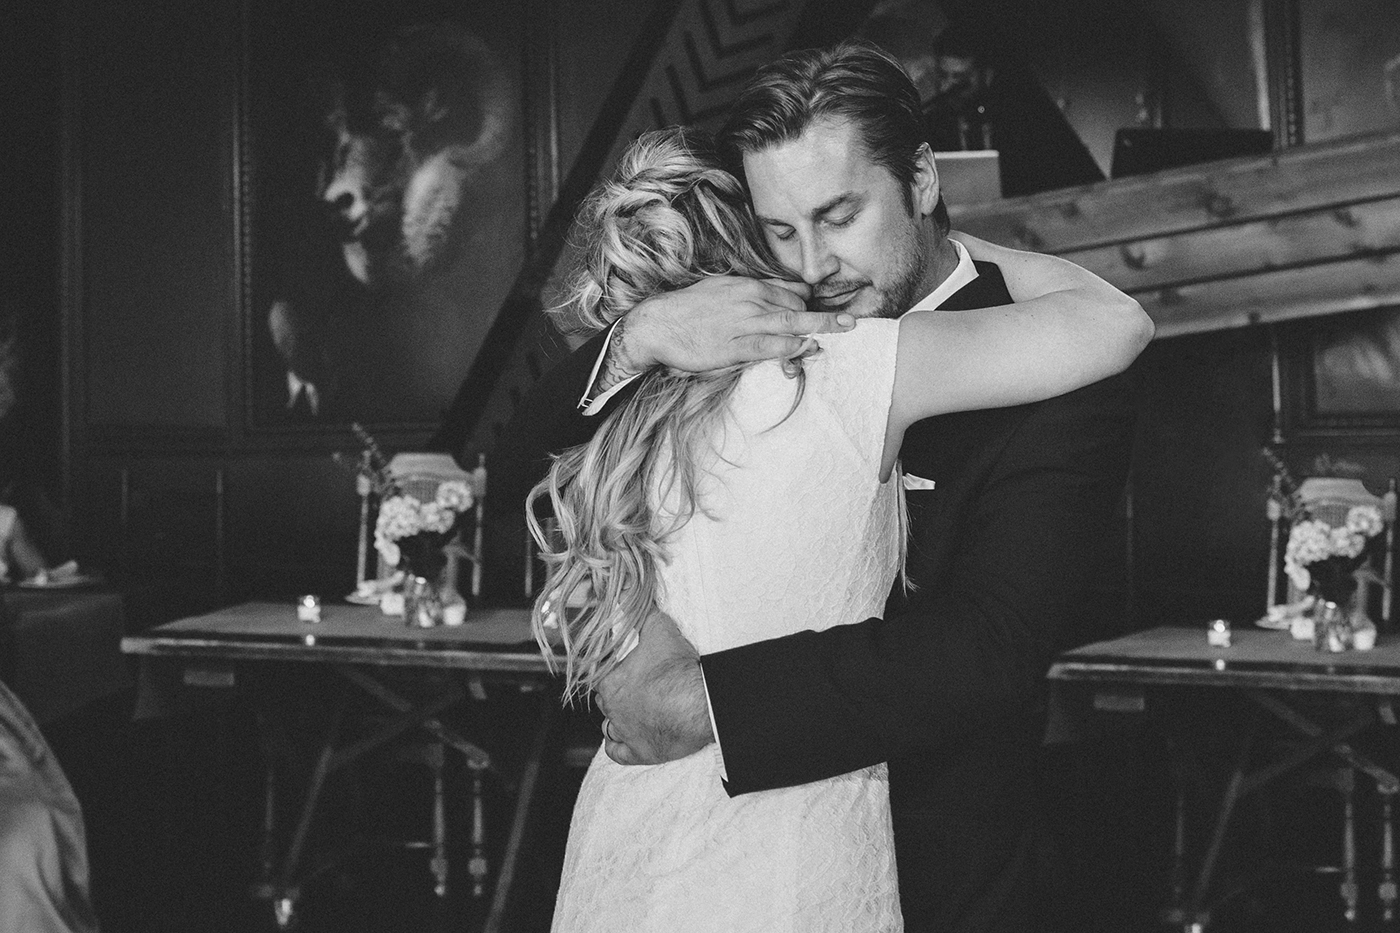 The first dance - Porta Asbury Park Wedding Venue | Documentary wedding photographer - blog.cassiecastellaw.com